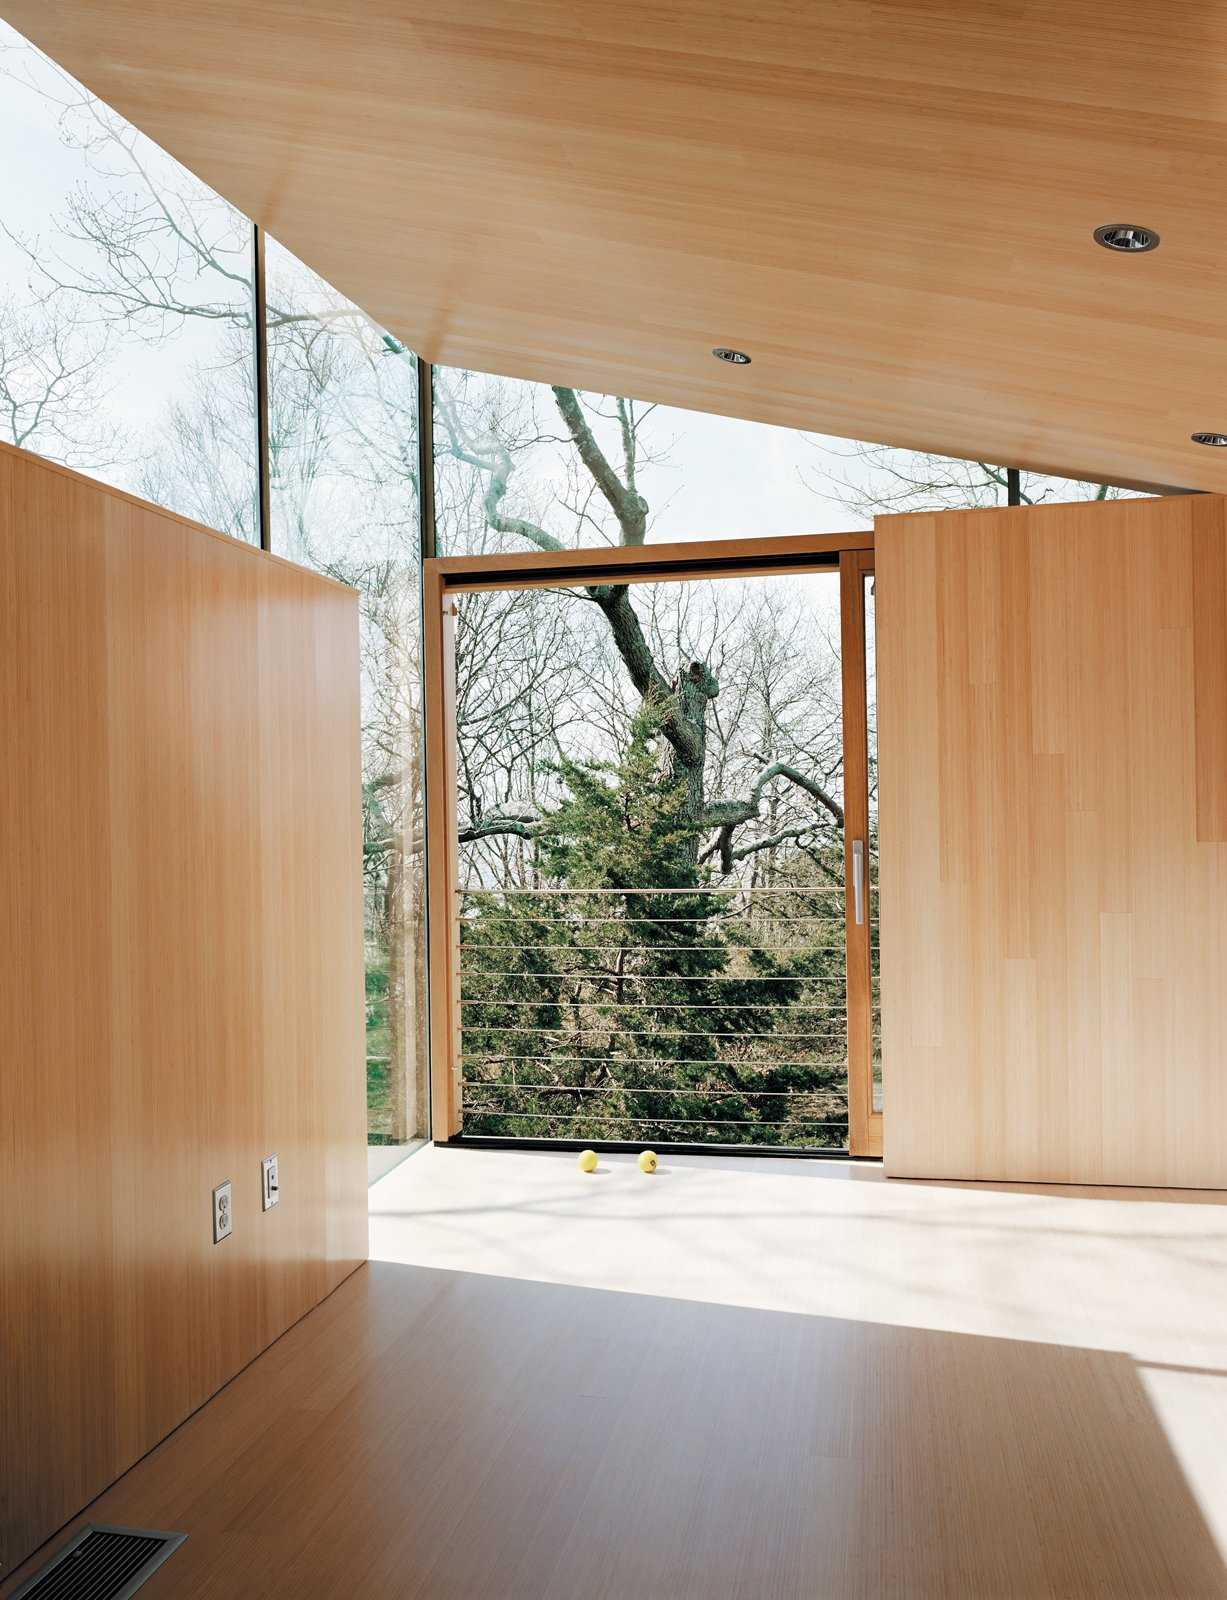 The bright, reflective surface amplifies natural light and bathes the interior in a warm glow even when the New England sun isn't cooperating. Striking Angular Cottage in Connecticut - Photo 9 of 10